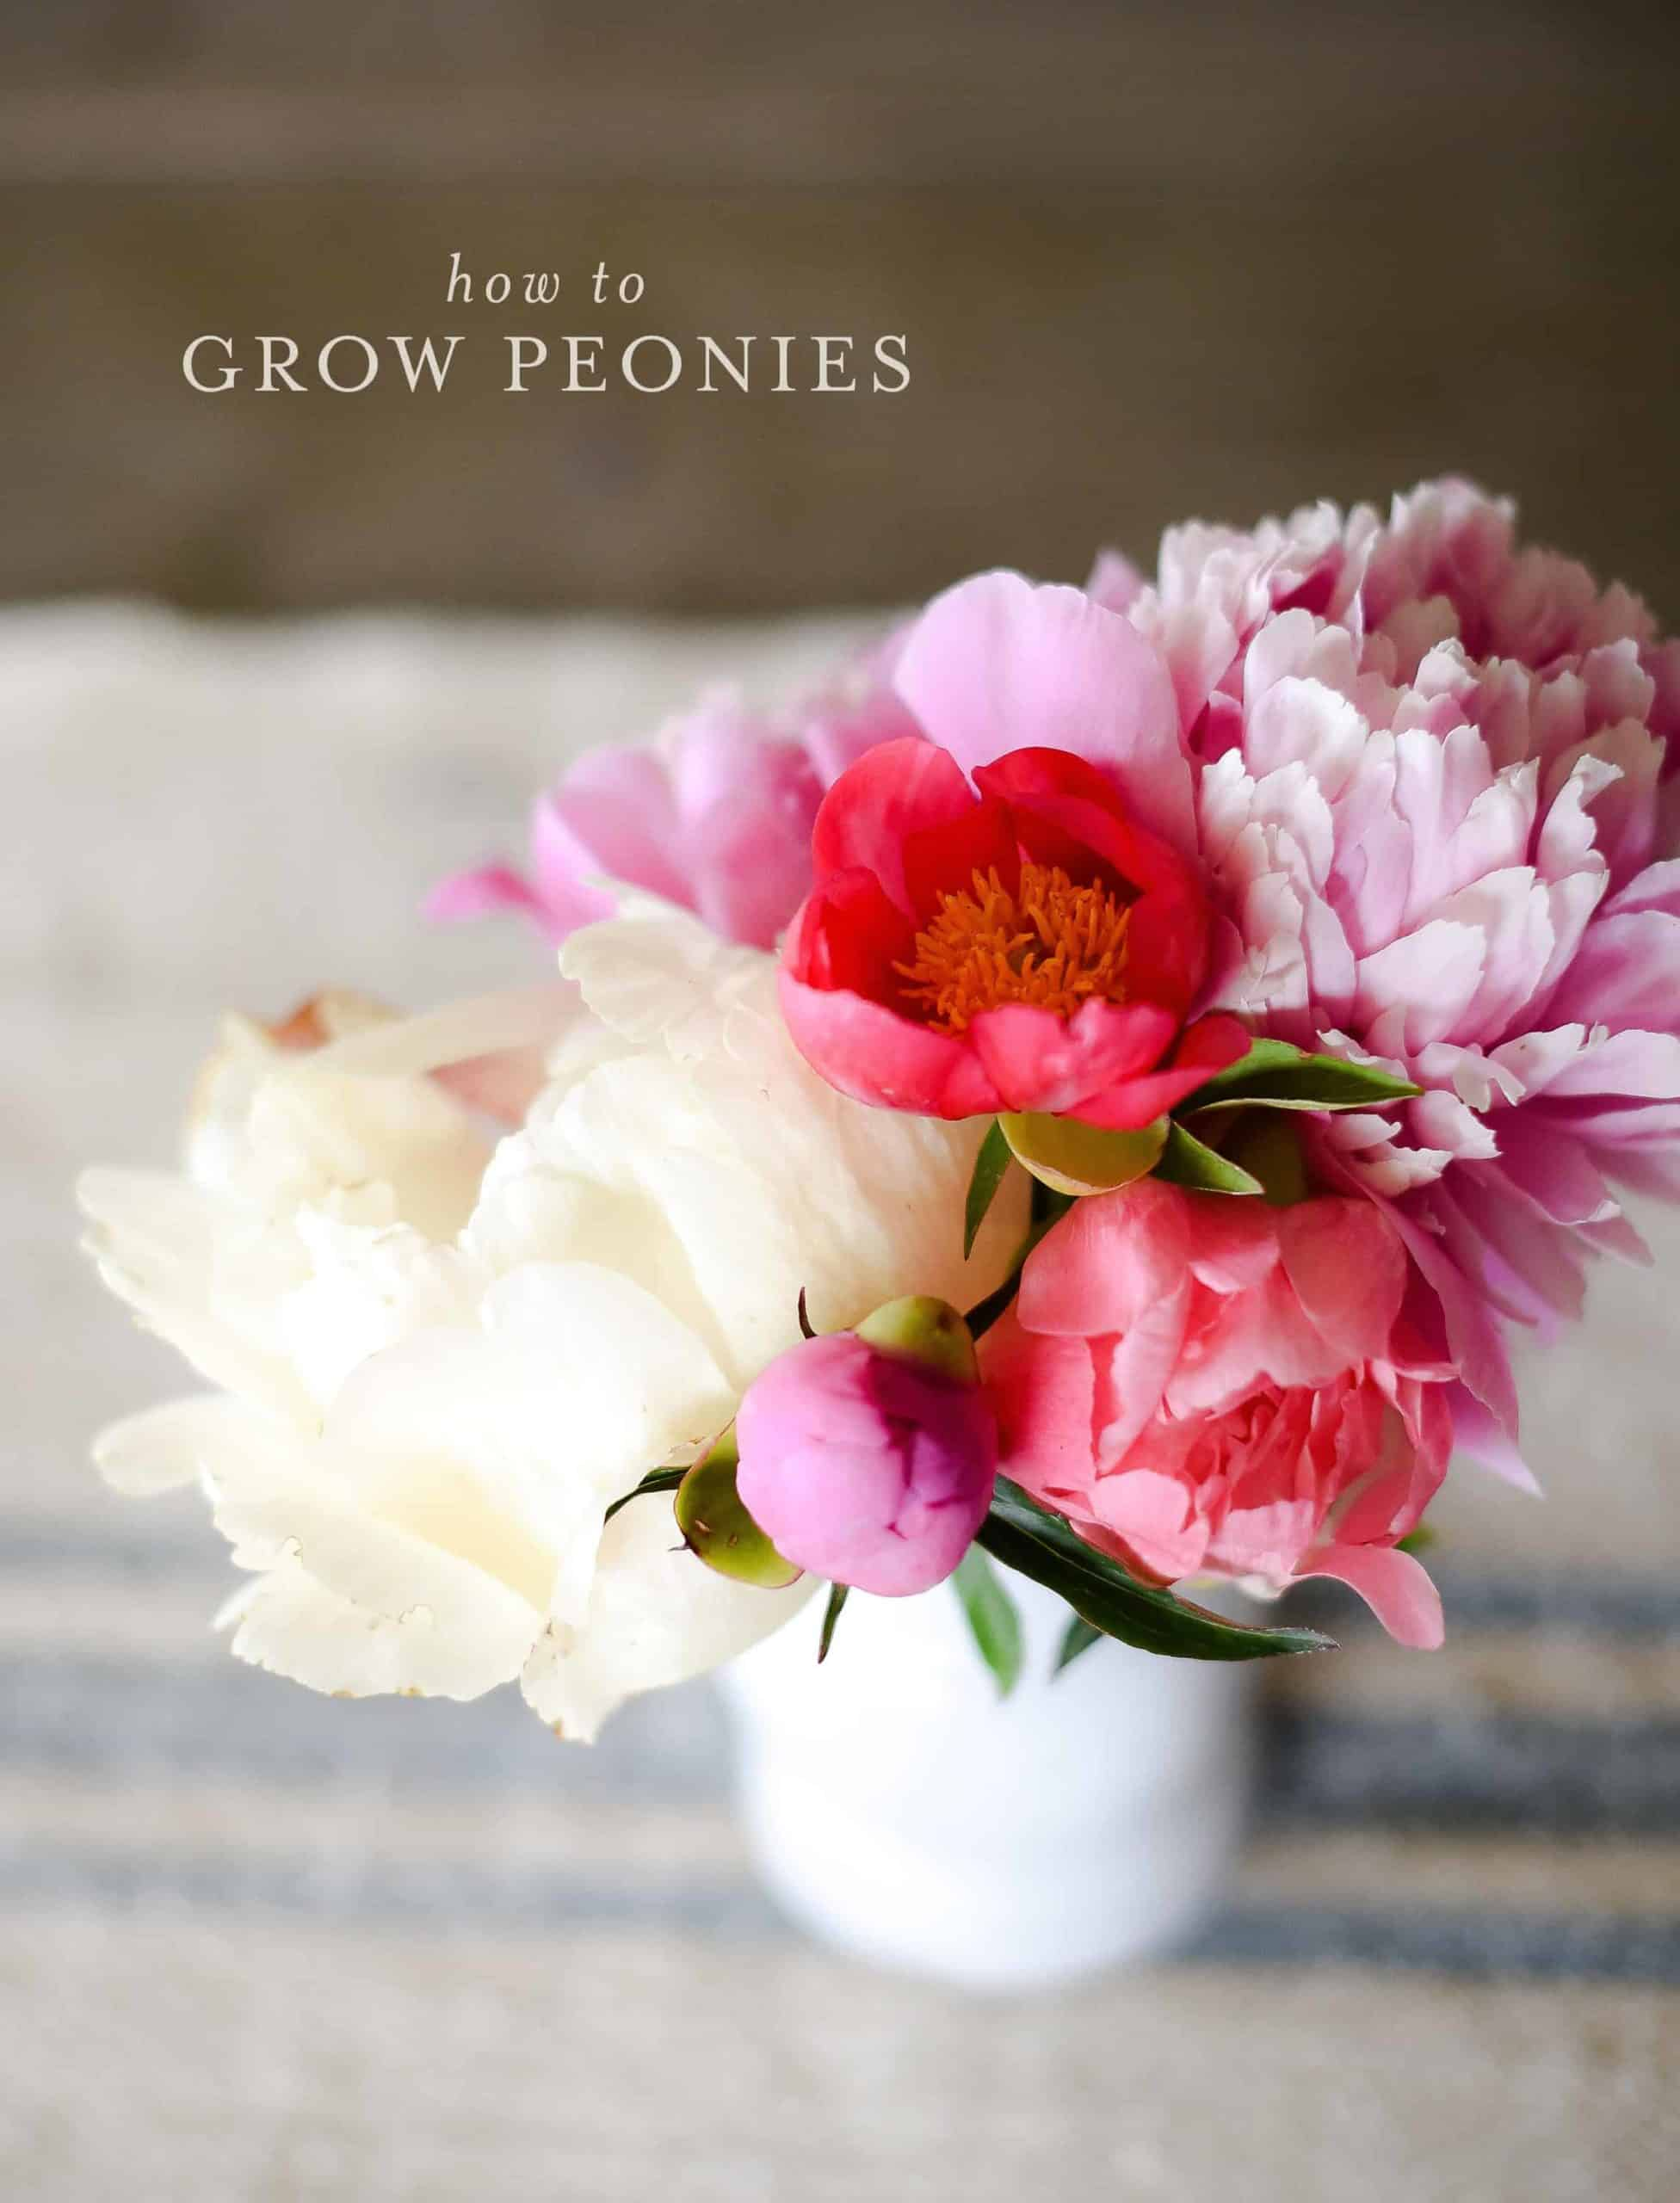 Growing peonies in your garden is a wonderful way to have beautiful cut flowers in the spring! Learn how to grow your own peonies with this simple guide!